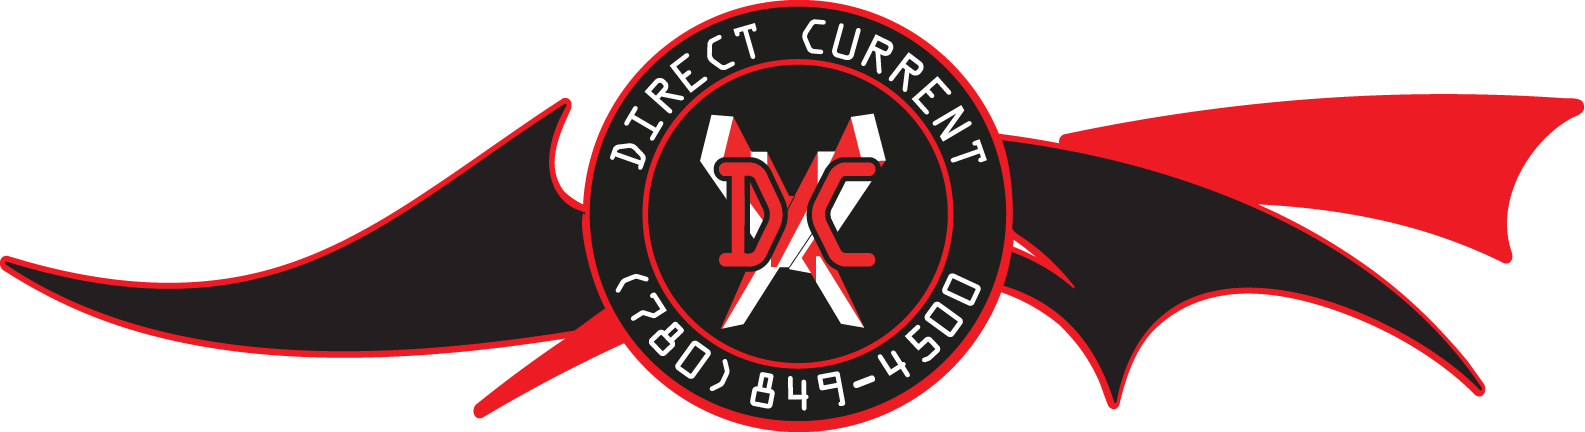 Direct Current Mobile & Electronics Inc.